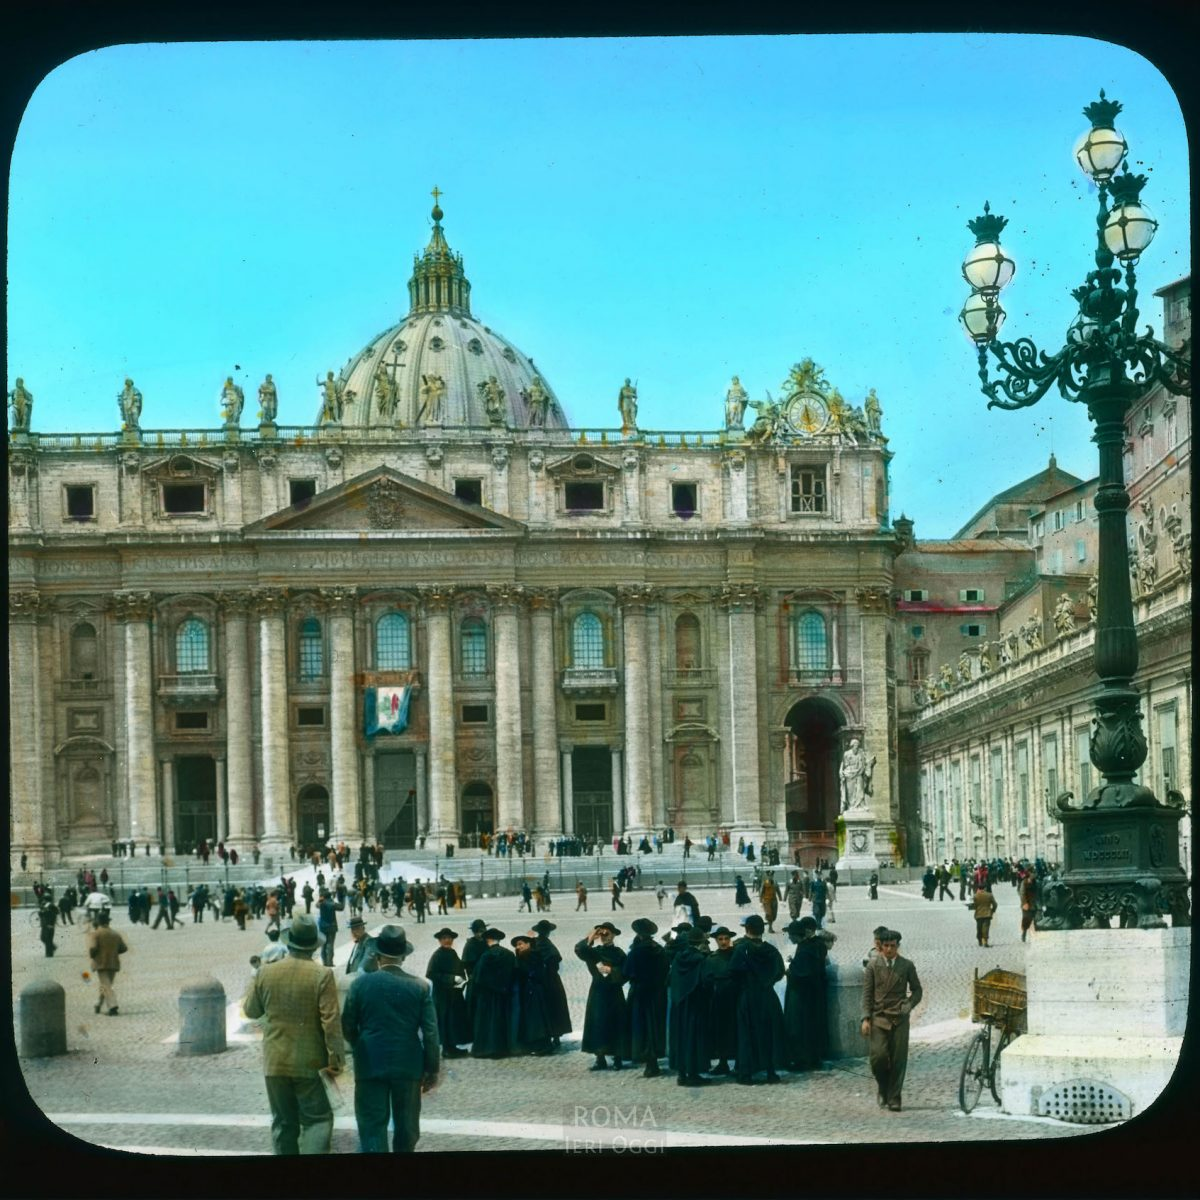 Vatican City. St. Peter's Basilica: facade on Piazza San Pietro View in tinted lantern slide, ca. 1919-1938. The basilica dates from ca. 1506-1626.